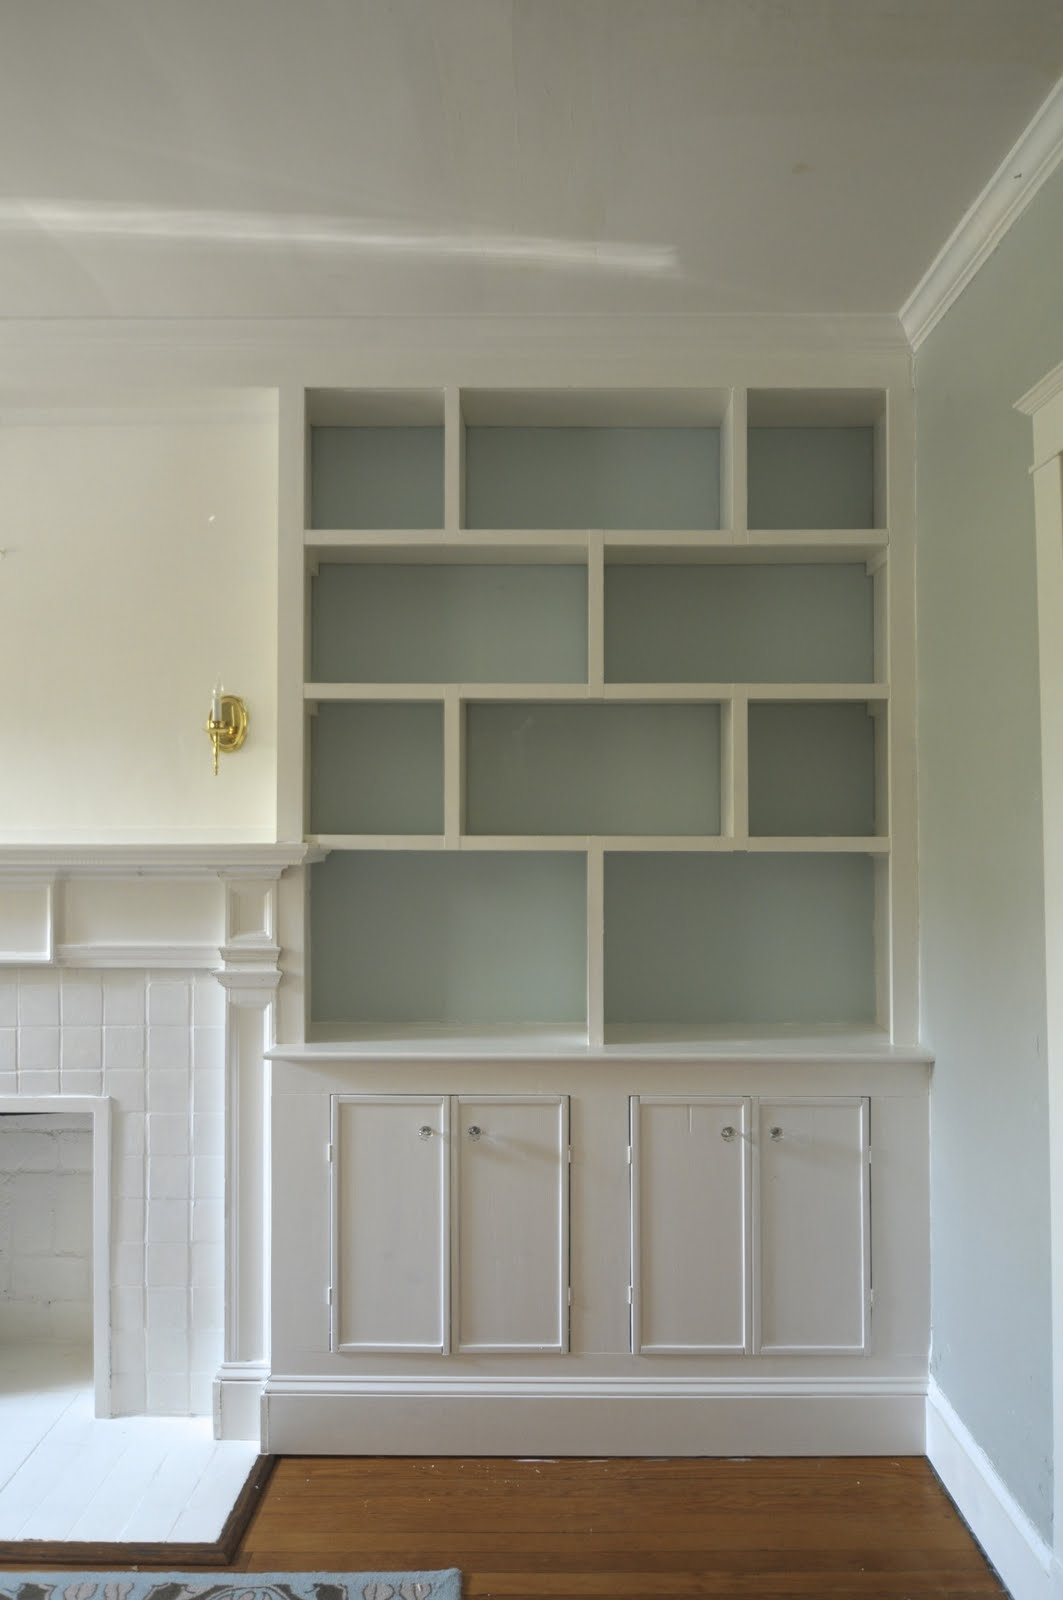 Living Room With Bookshelf: Built-in Bookshelves